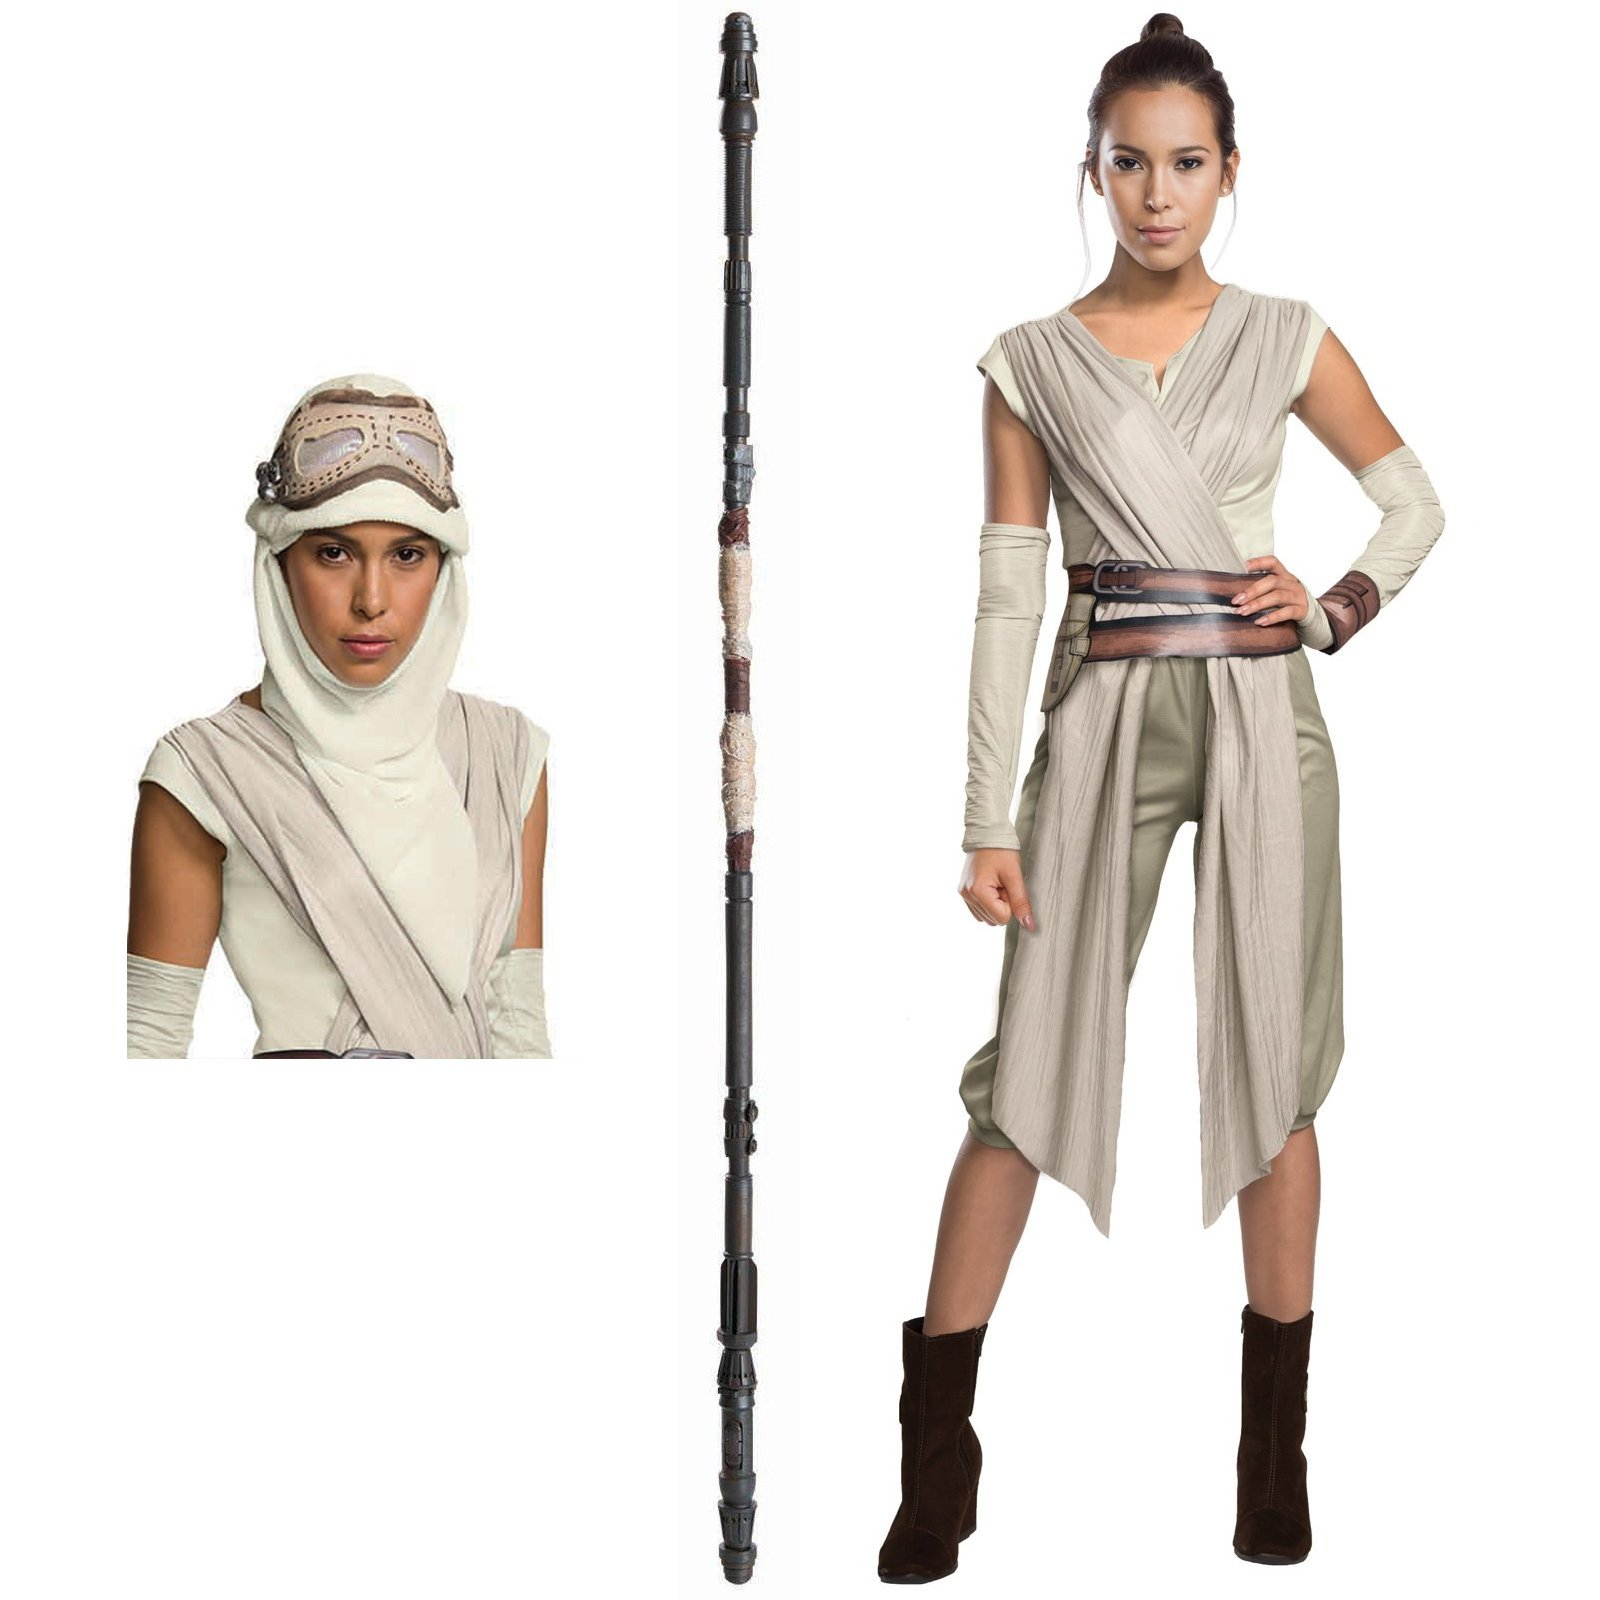 Star Wars: The Force Awakens Rey Deluxe Adult Costume Kit Large Multi-Colored 2